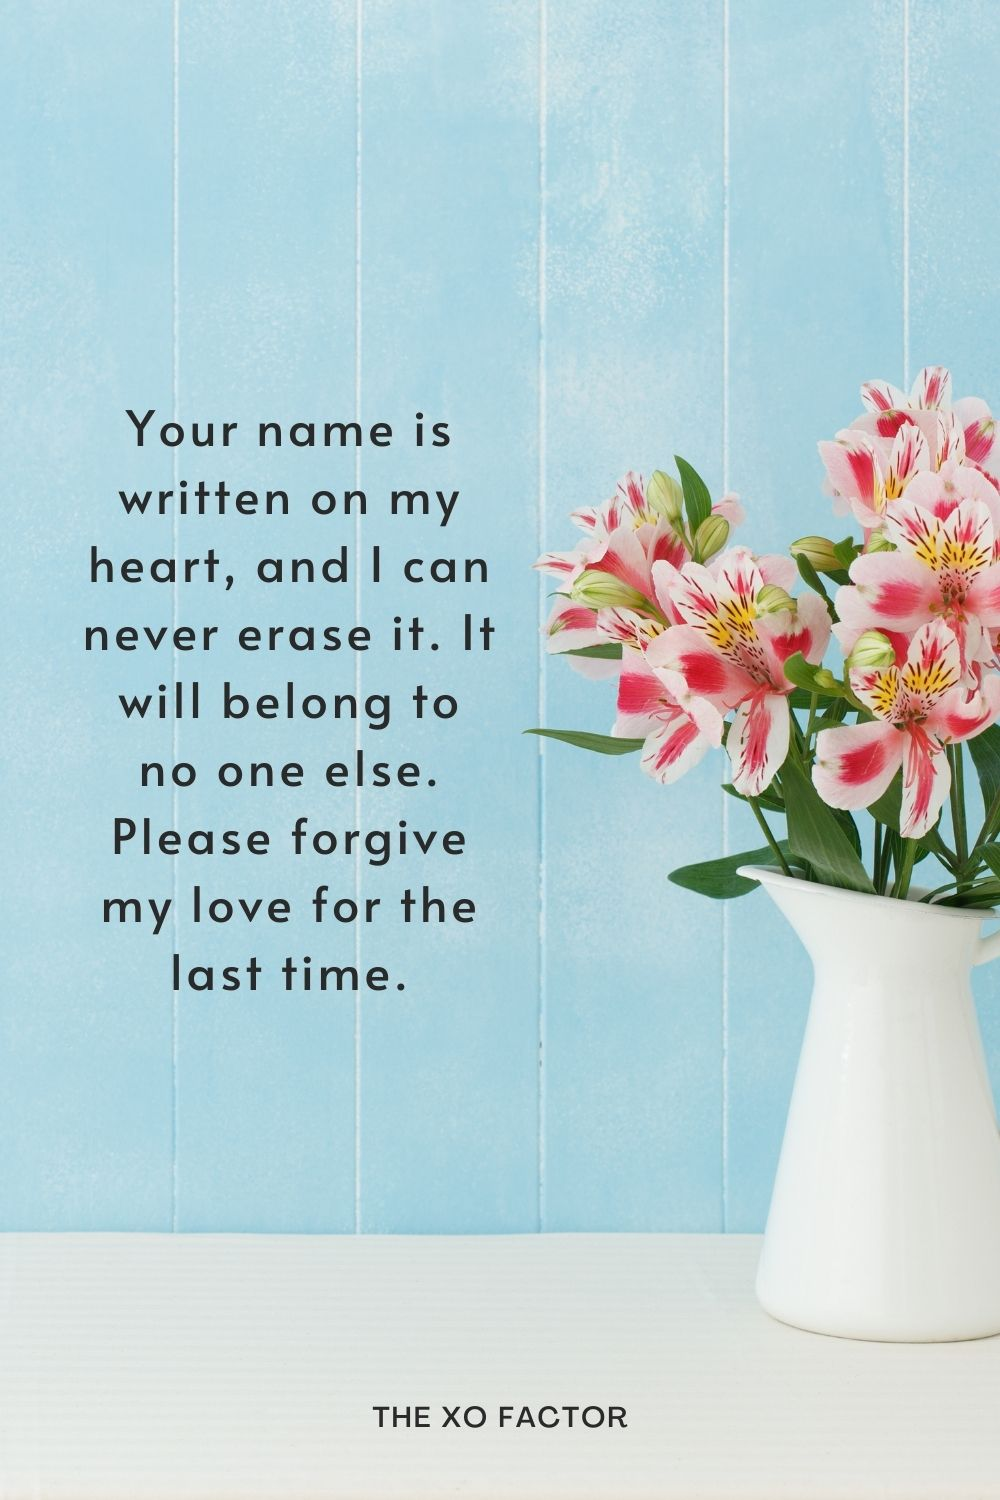 Your name is written on my heart, and I can never erase it. It will belong to no one else. Please forgive my love for the last time.